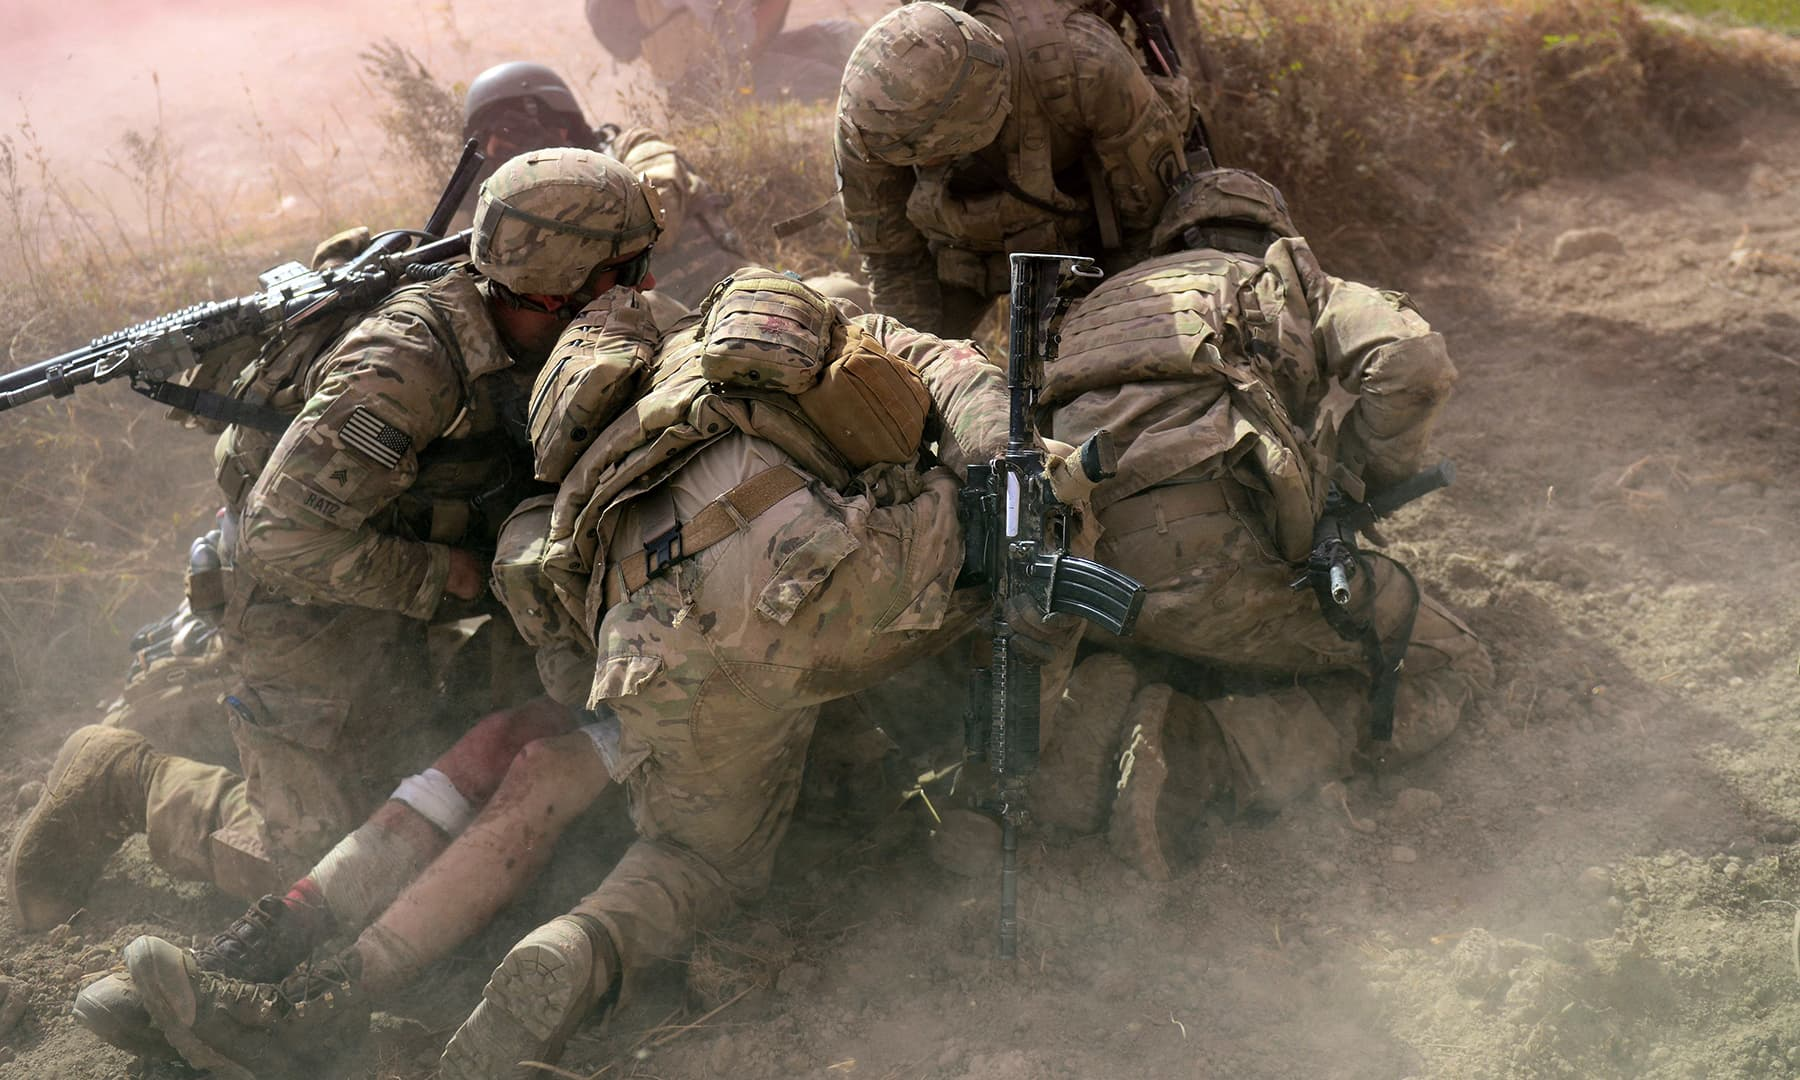 In this file photo taken on October 13, 2012, US Army soldiers attached to 2nd platoon, C troop, 1st Squadron (Airborne), 91st US Cavalry Regiment, 173rd Airborne Brigade Combat Team operating under Nato-sponsored International Security Assistance Force (ISAF) protect a wounded comrade from dust and smoke flares after an Improvised Explosive Device (IED) blast during a patrol near Baraki Barak base in Logar province. — AFP